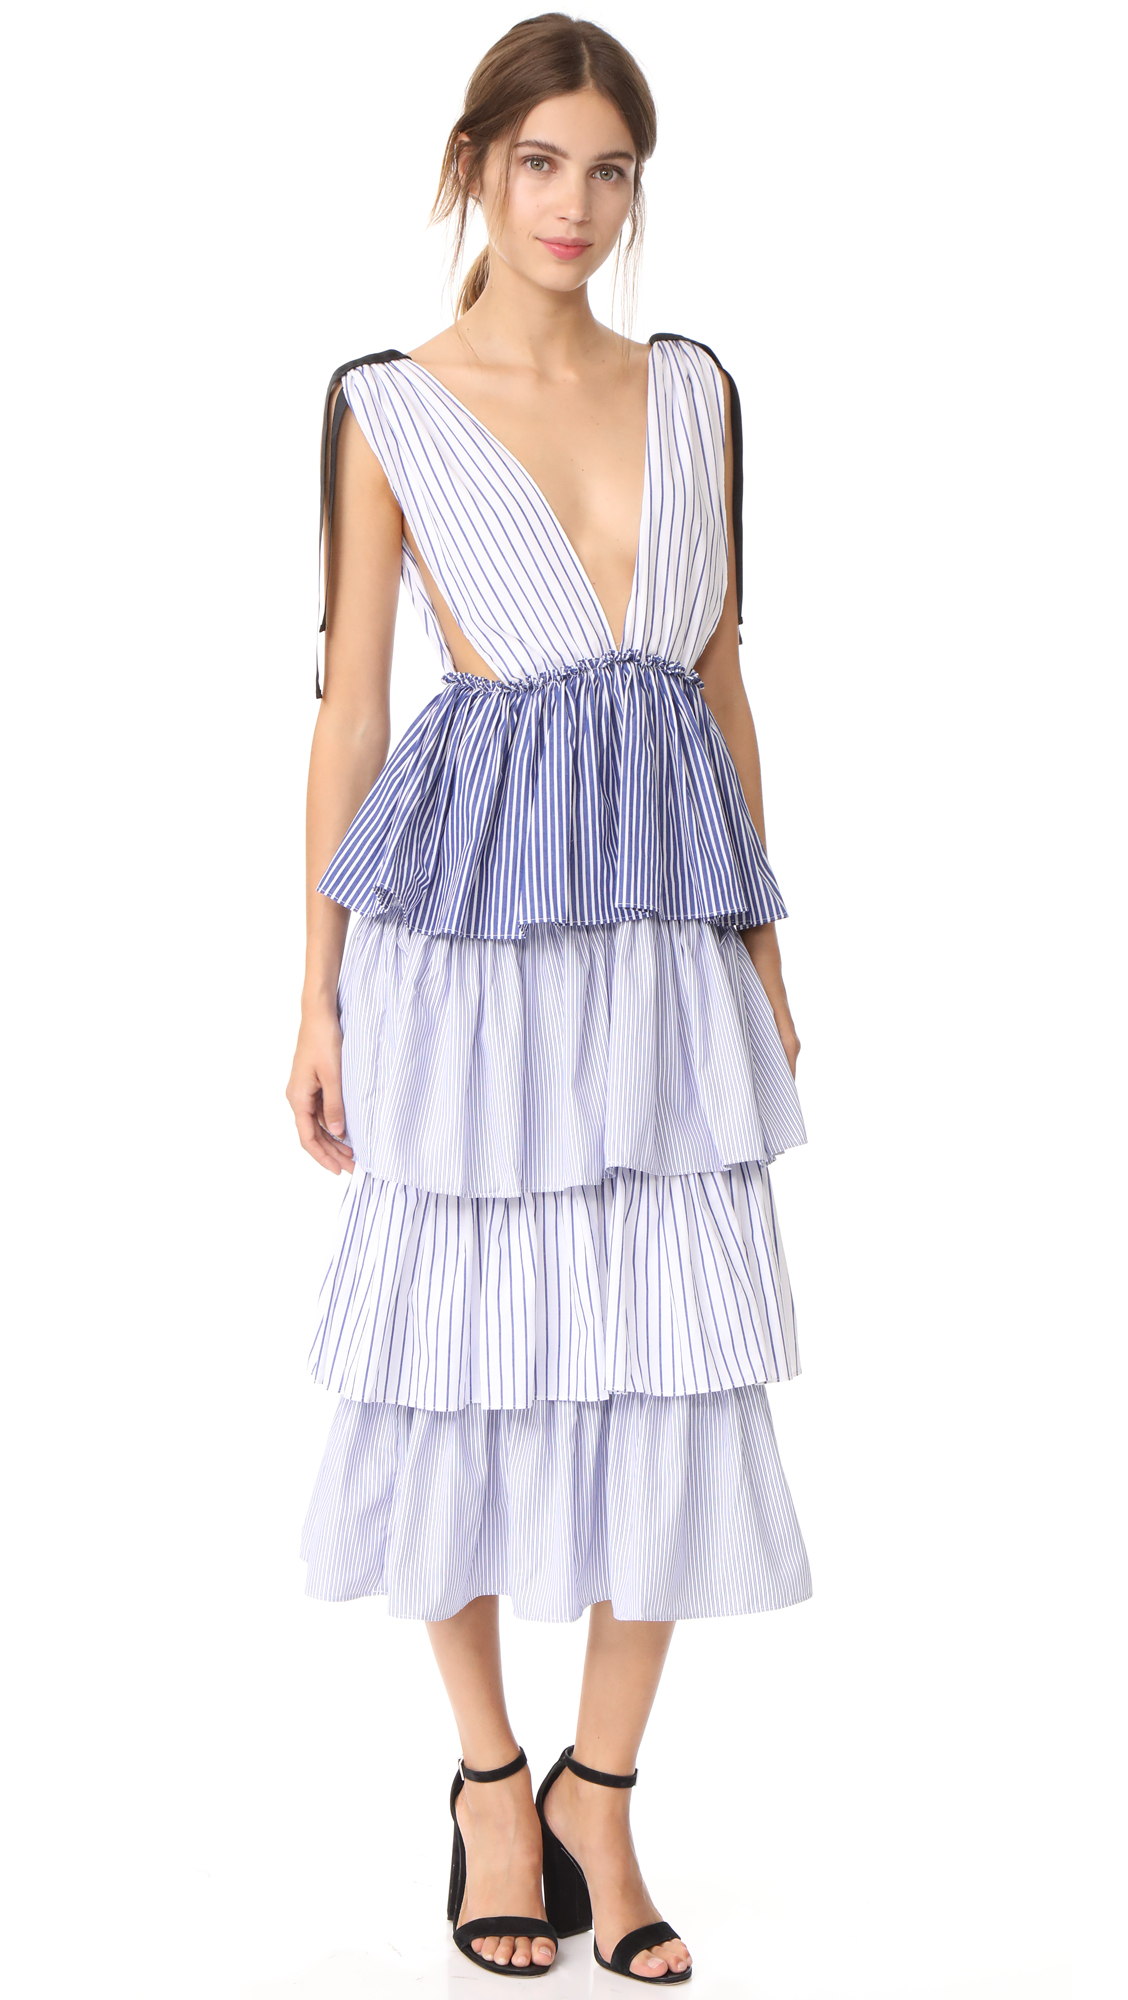 STYLEKEEPERS Free Spirit Dress - Striped Blue